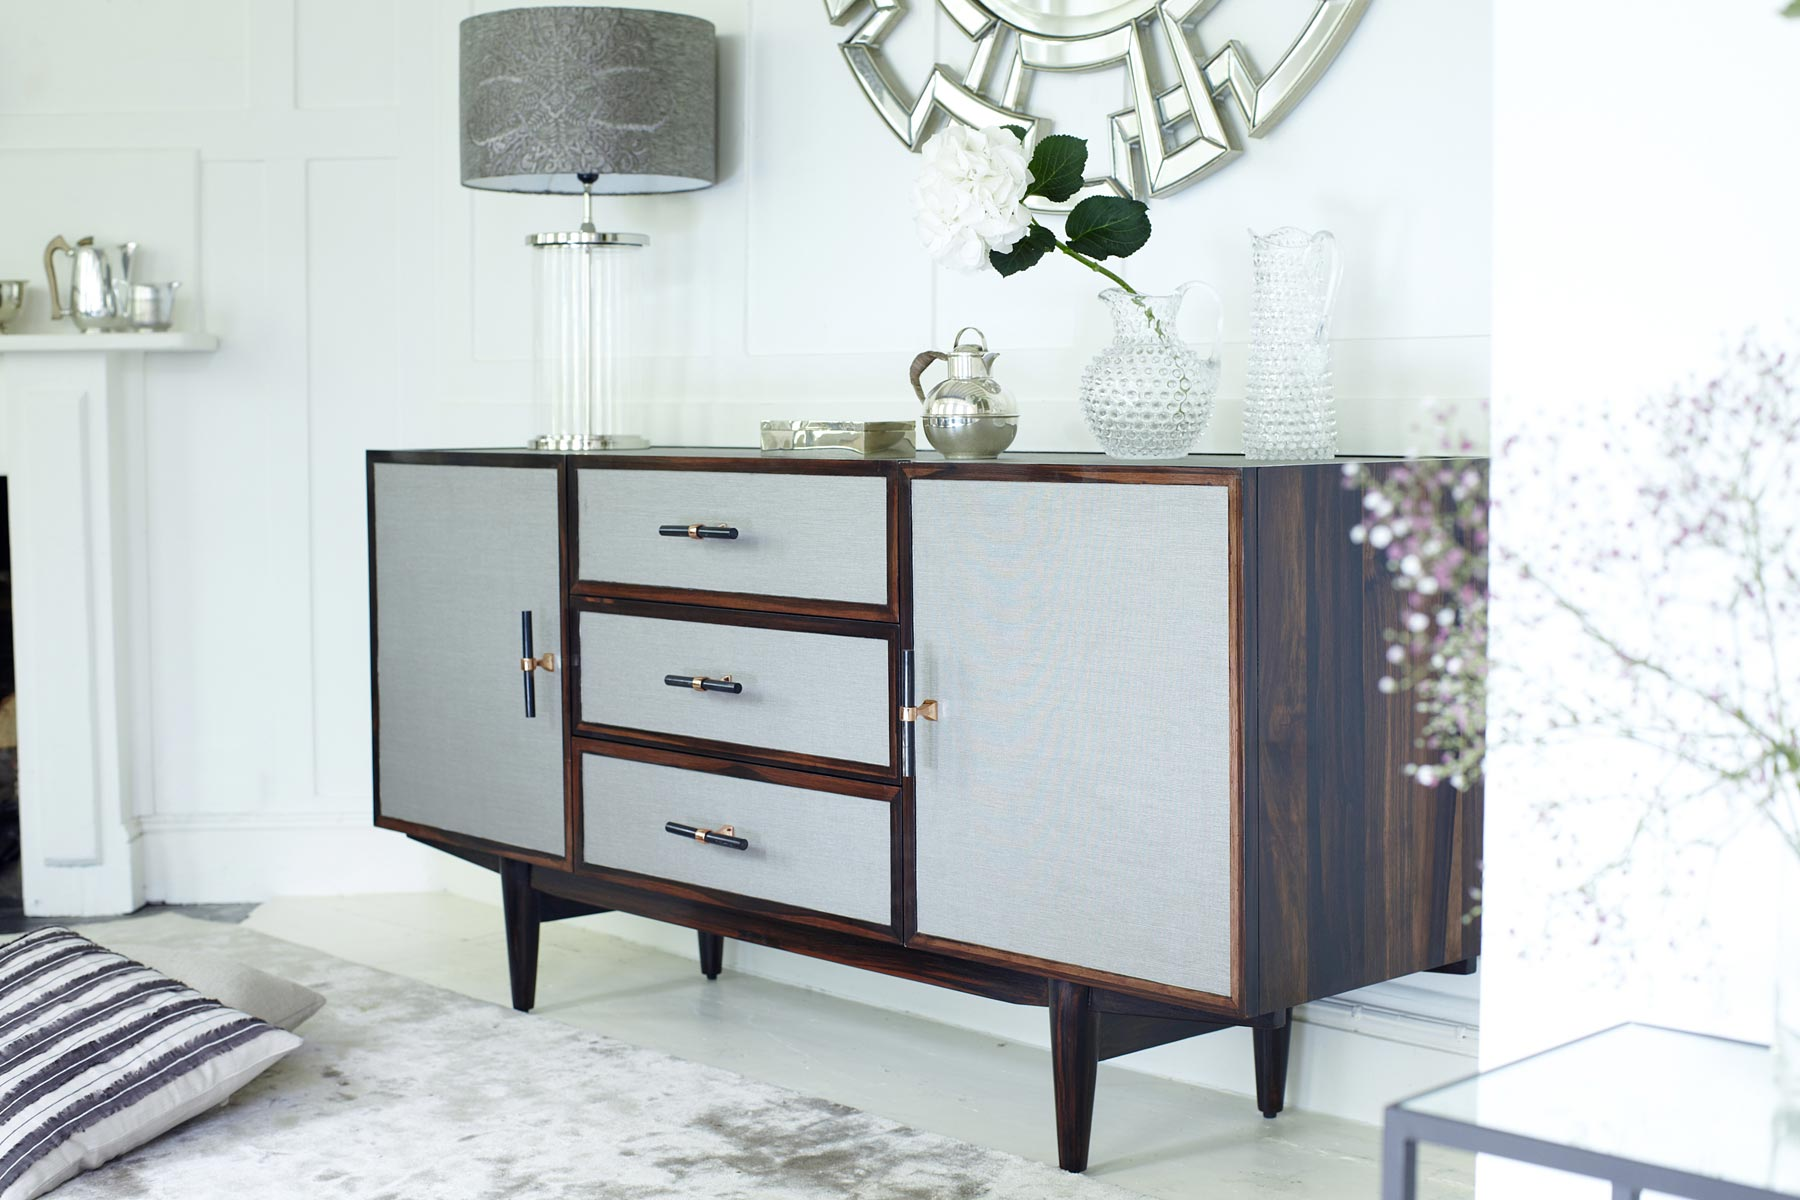 Mufti Maestro sideboard with horn and brass handles